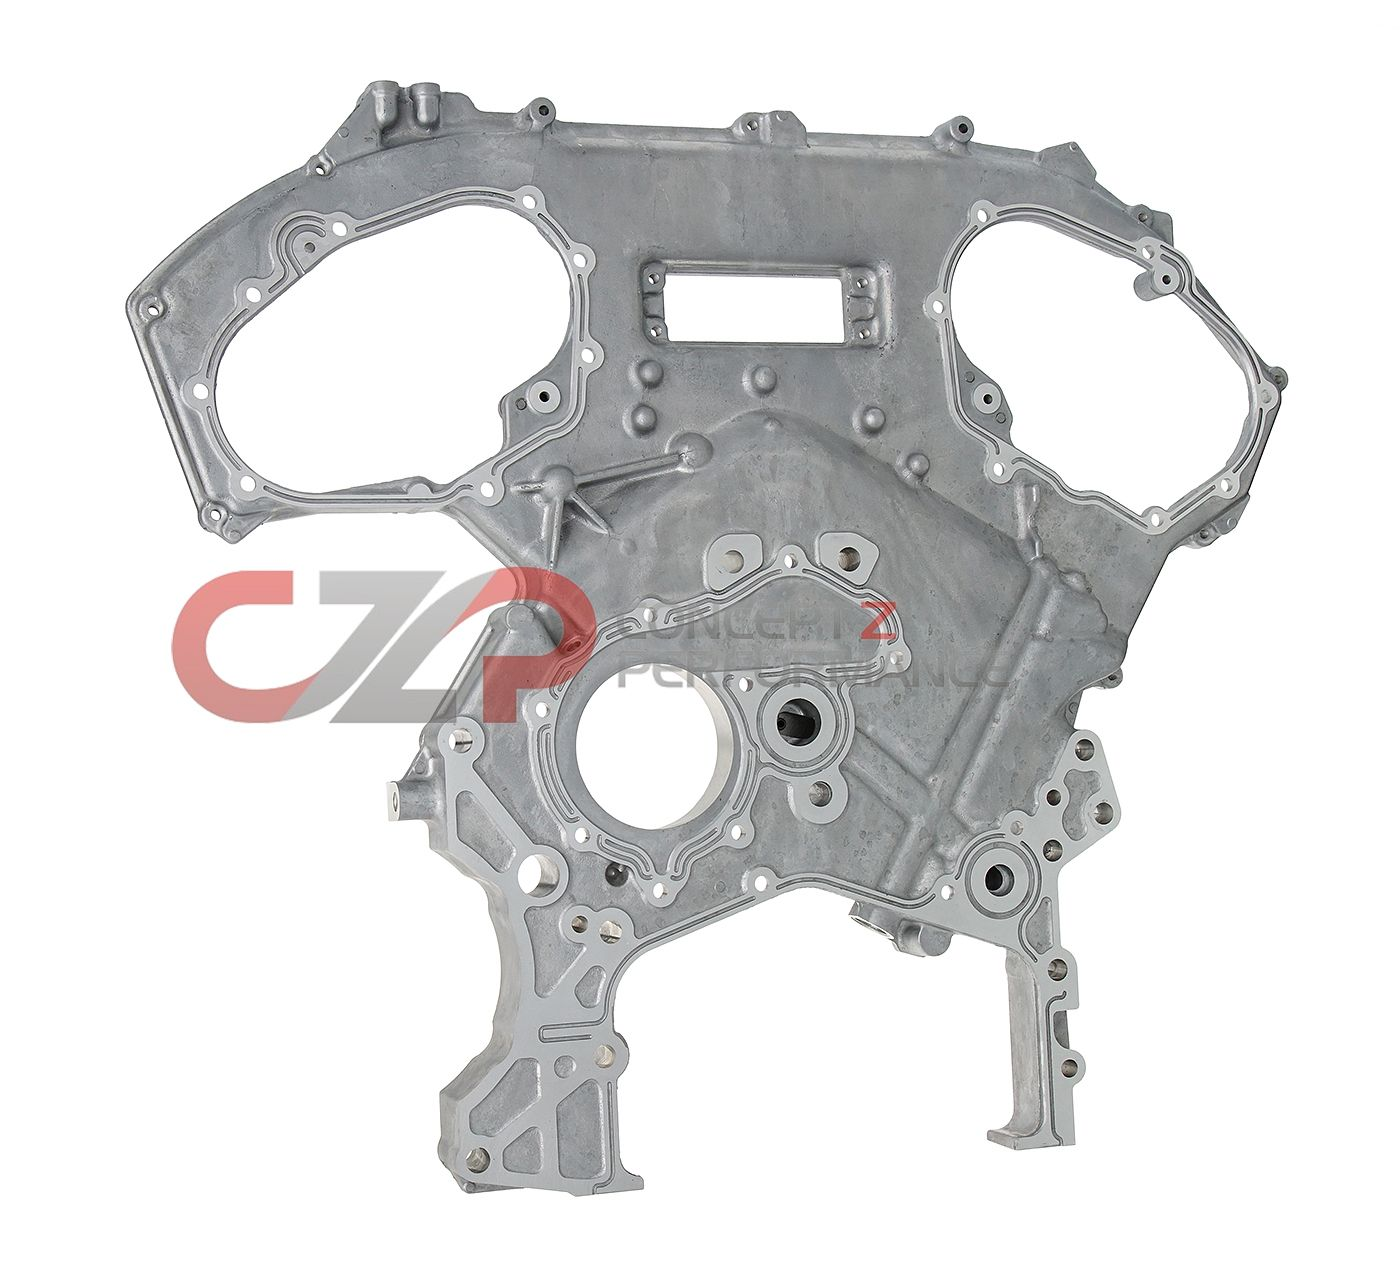 Nissan / Infiniti Nissan OEM Rear Timing Chain Cover Plate